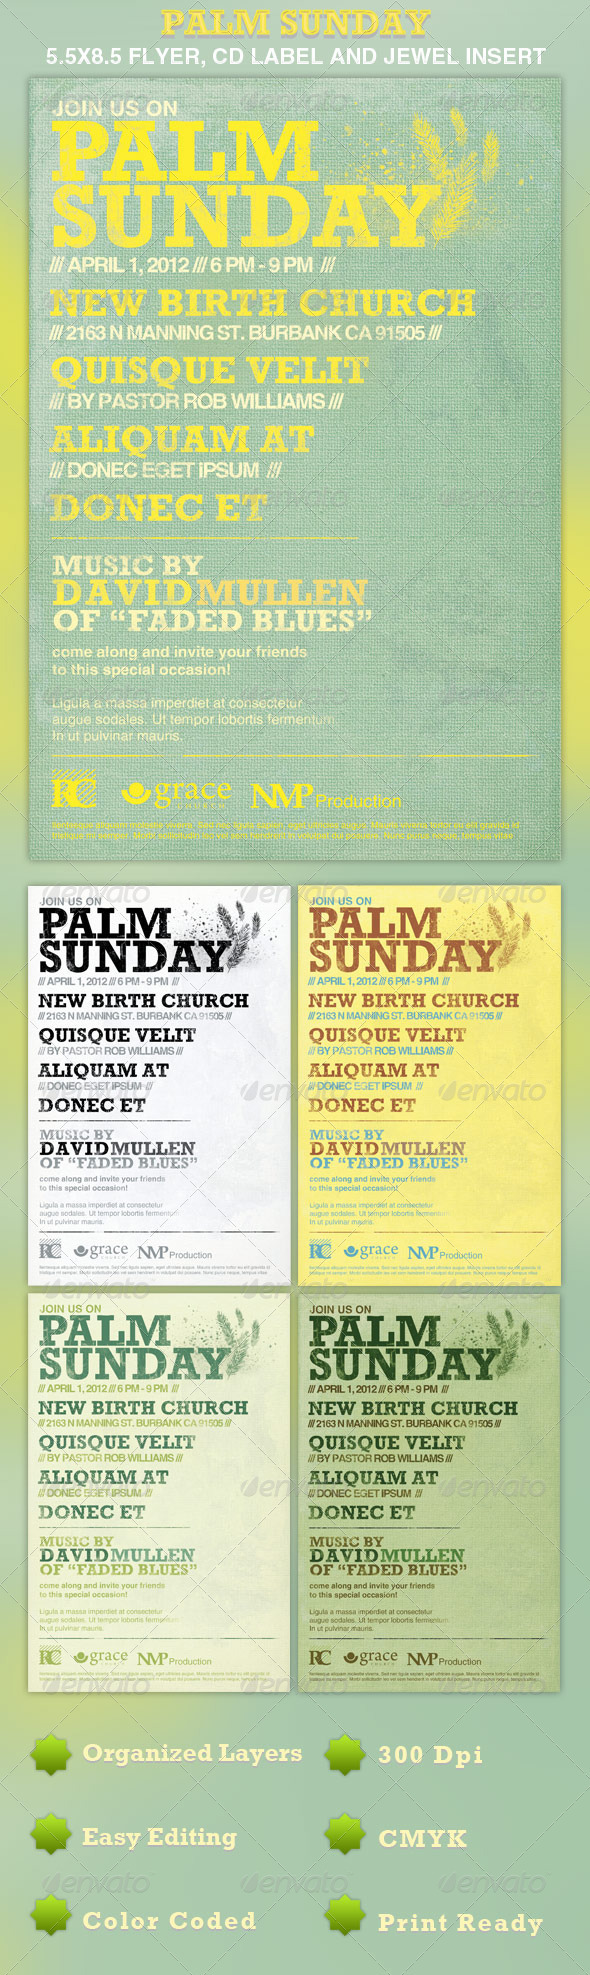 Palm Sunday Flyer Template - Church Flyers